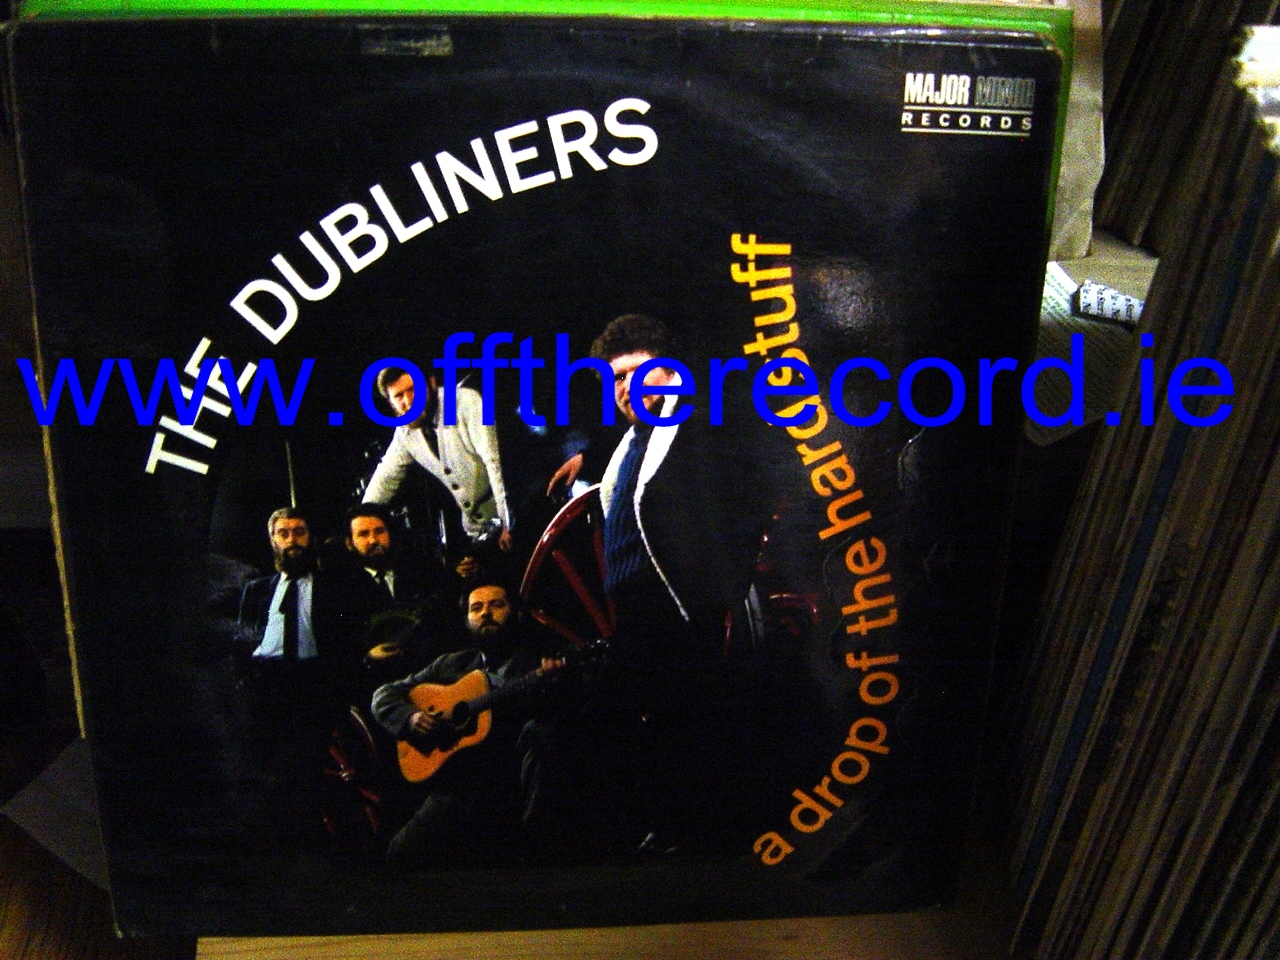 The Dubliners - A Drop of the Hard Stuff - Major Minor Records